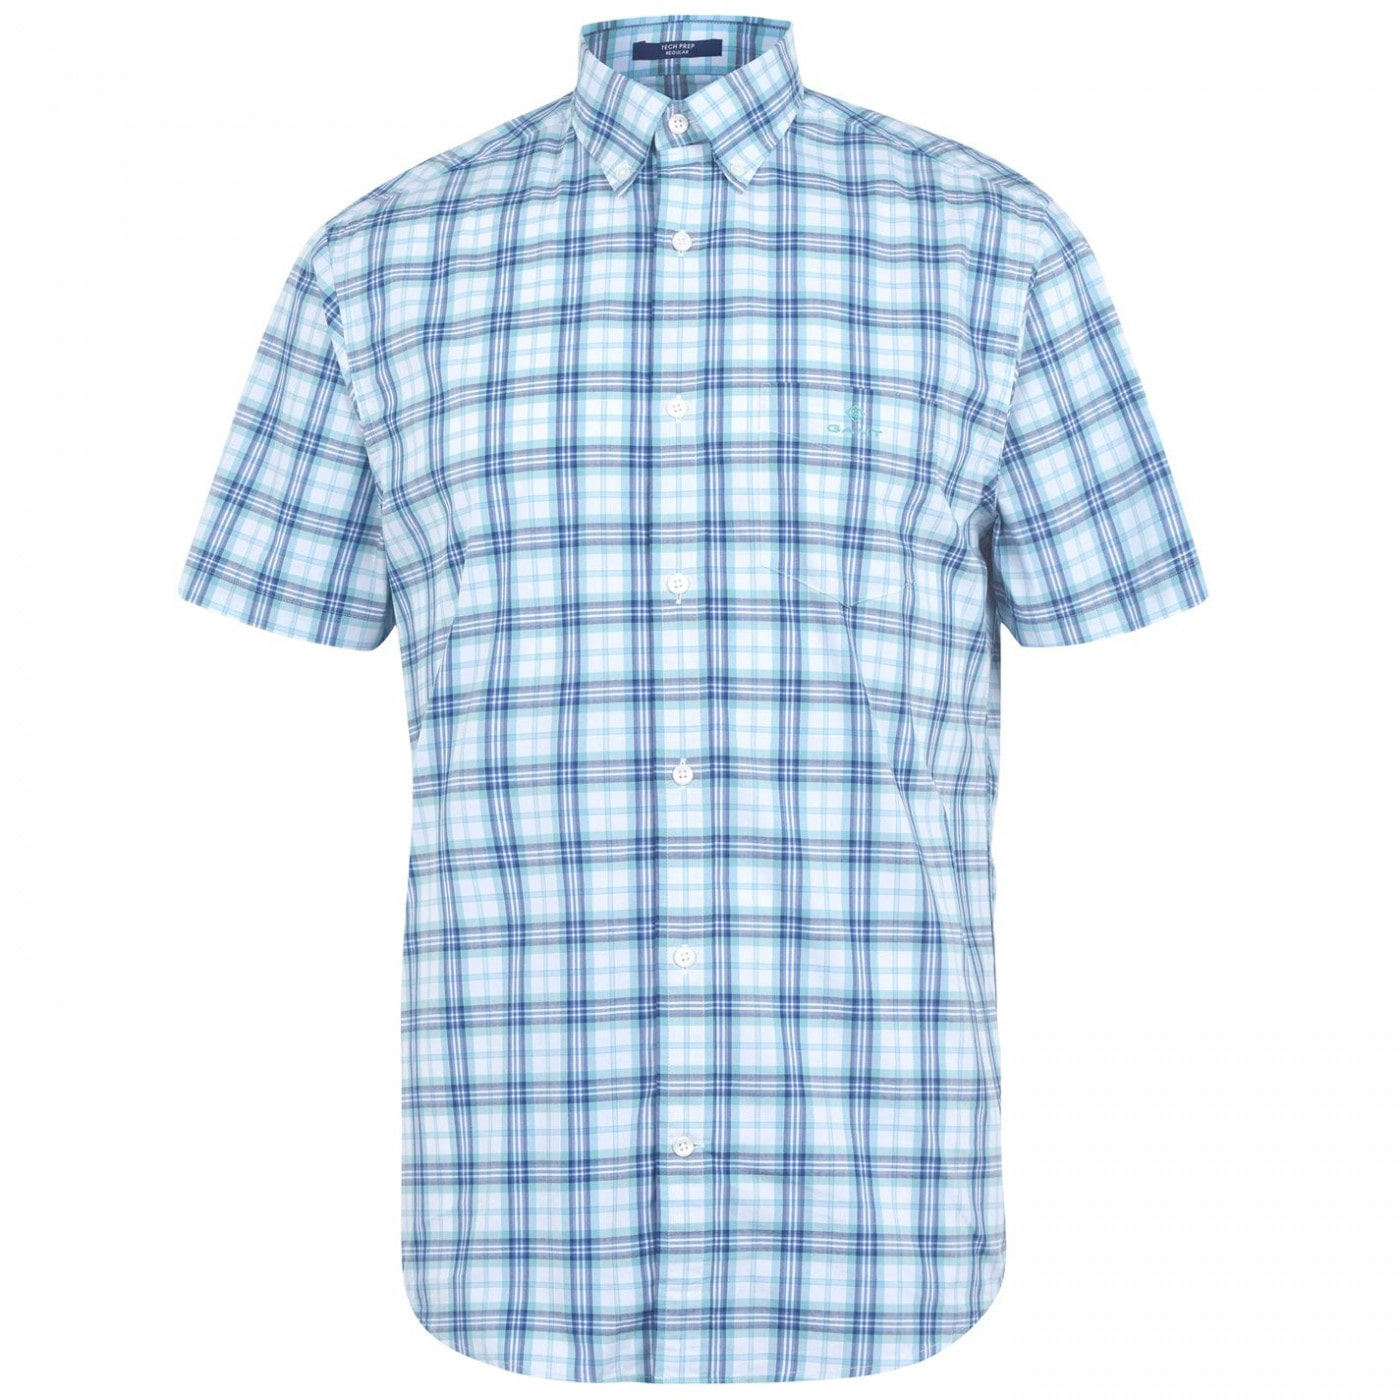 Gant Multi Check Short Sleeve Shirt